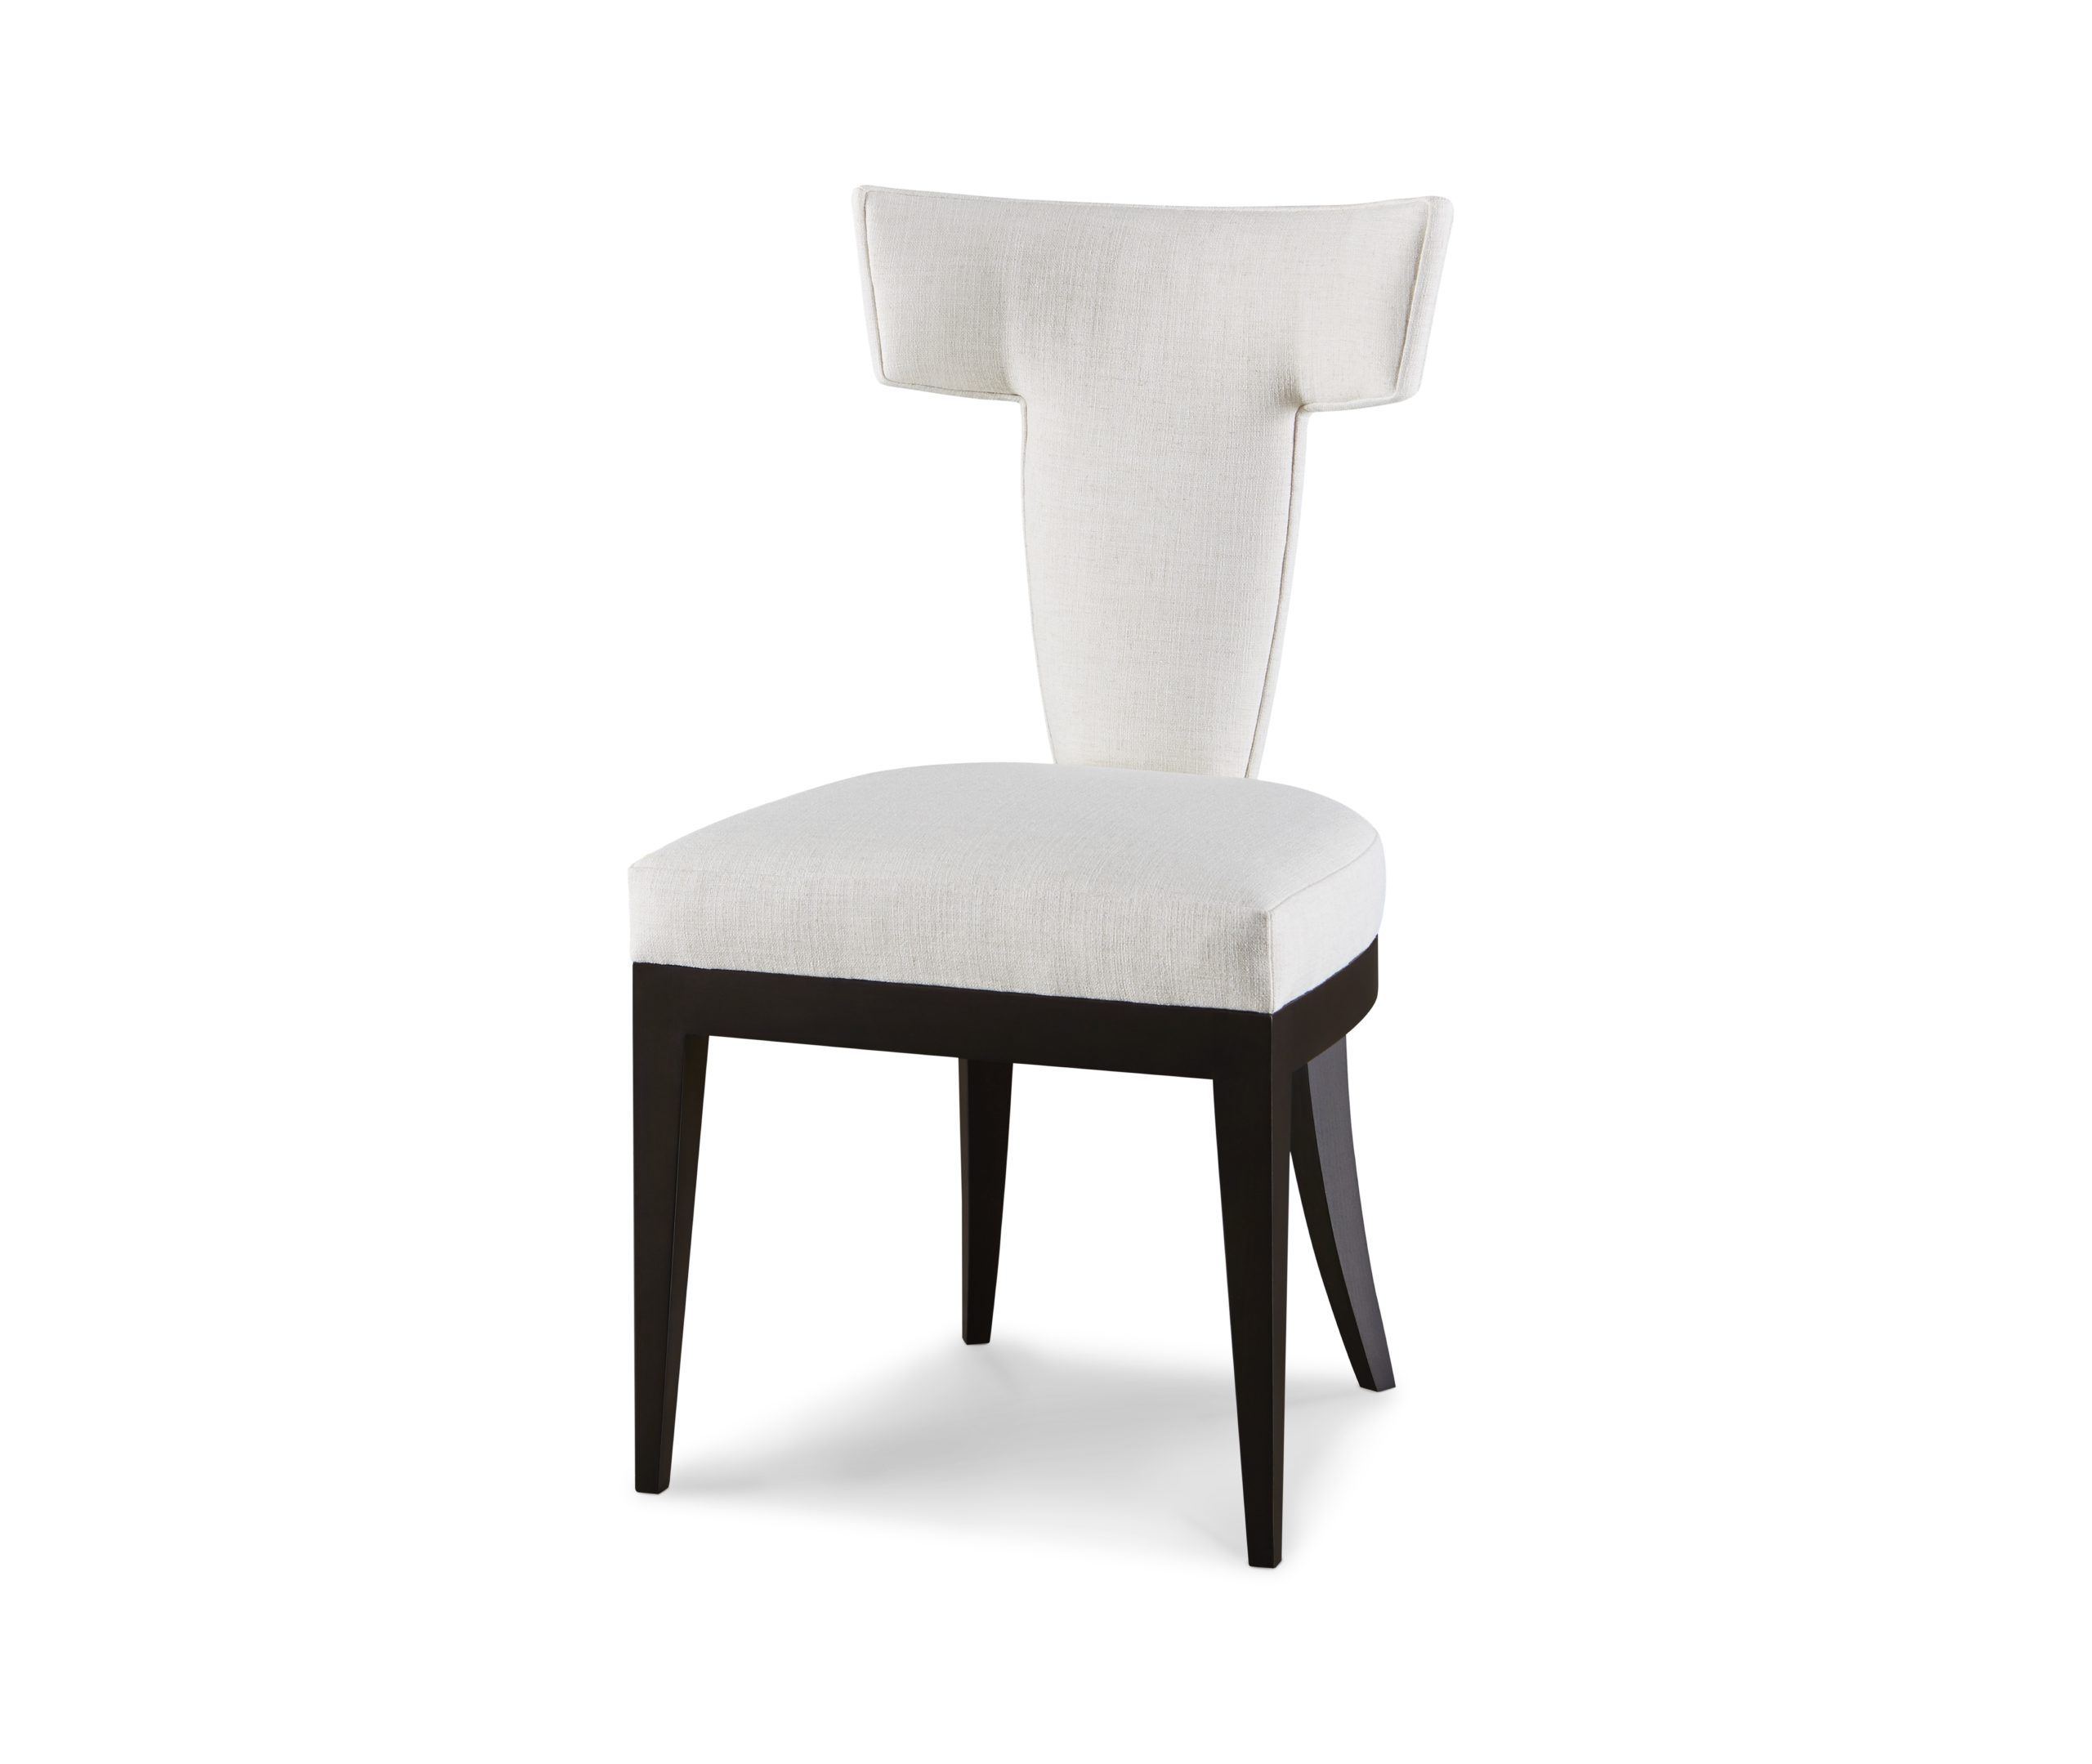 Baker_products_WNWN_ace_chair_BAA3242_FRONT_3QRT-2-scaled-2